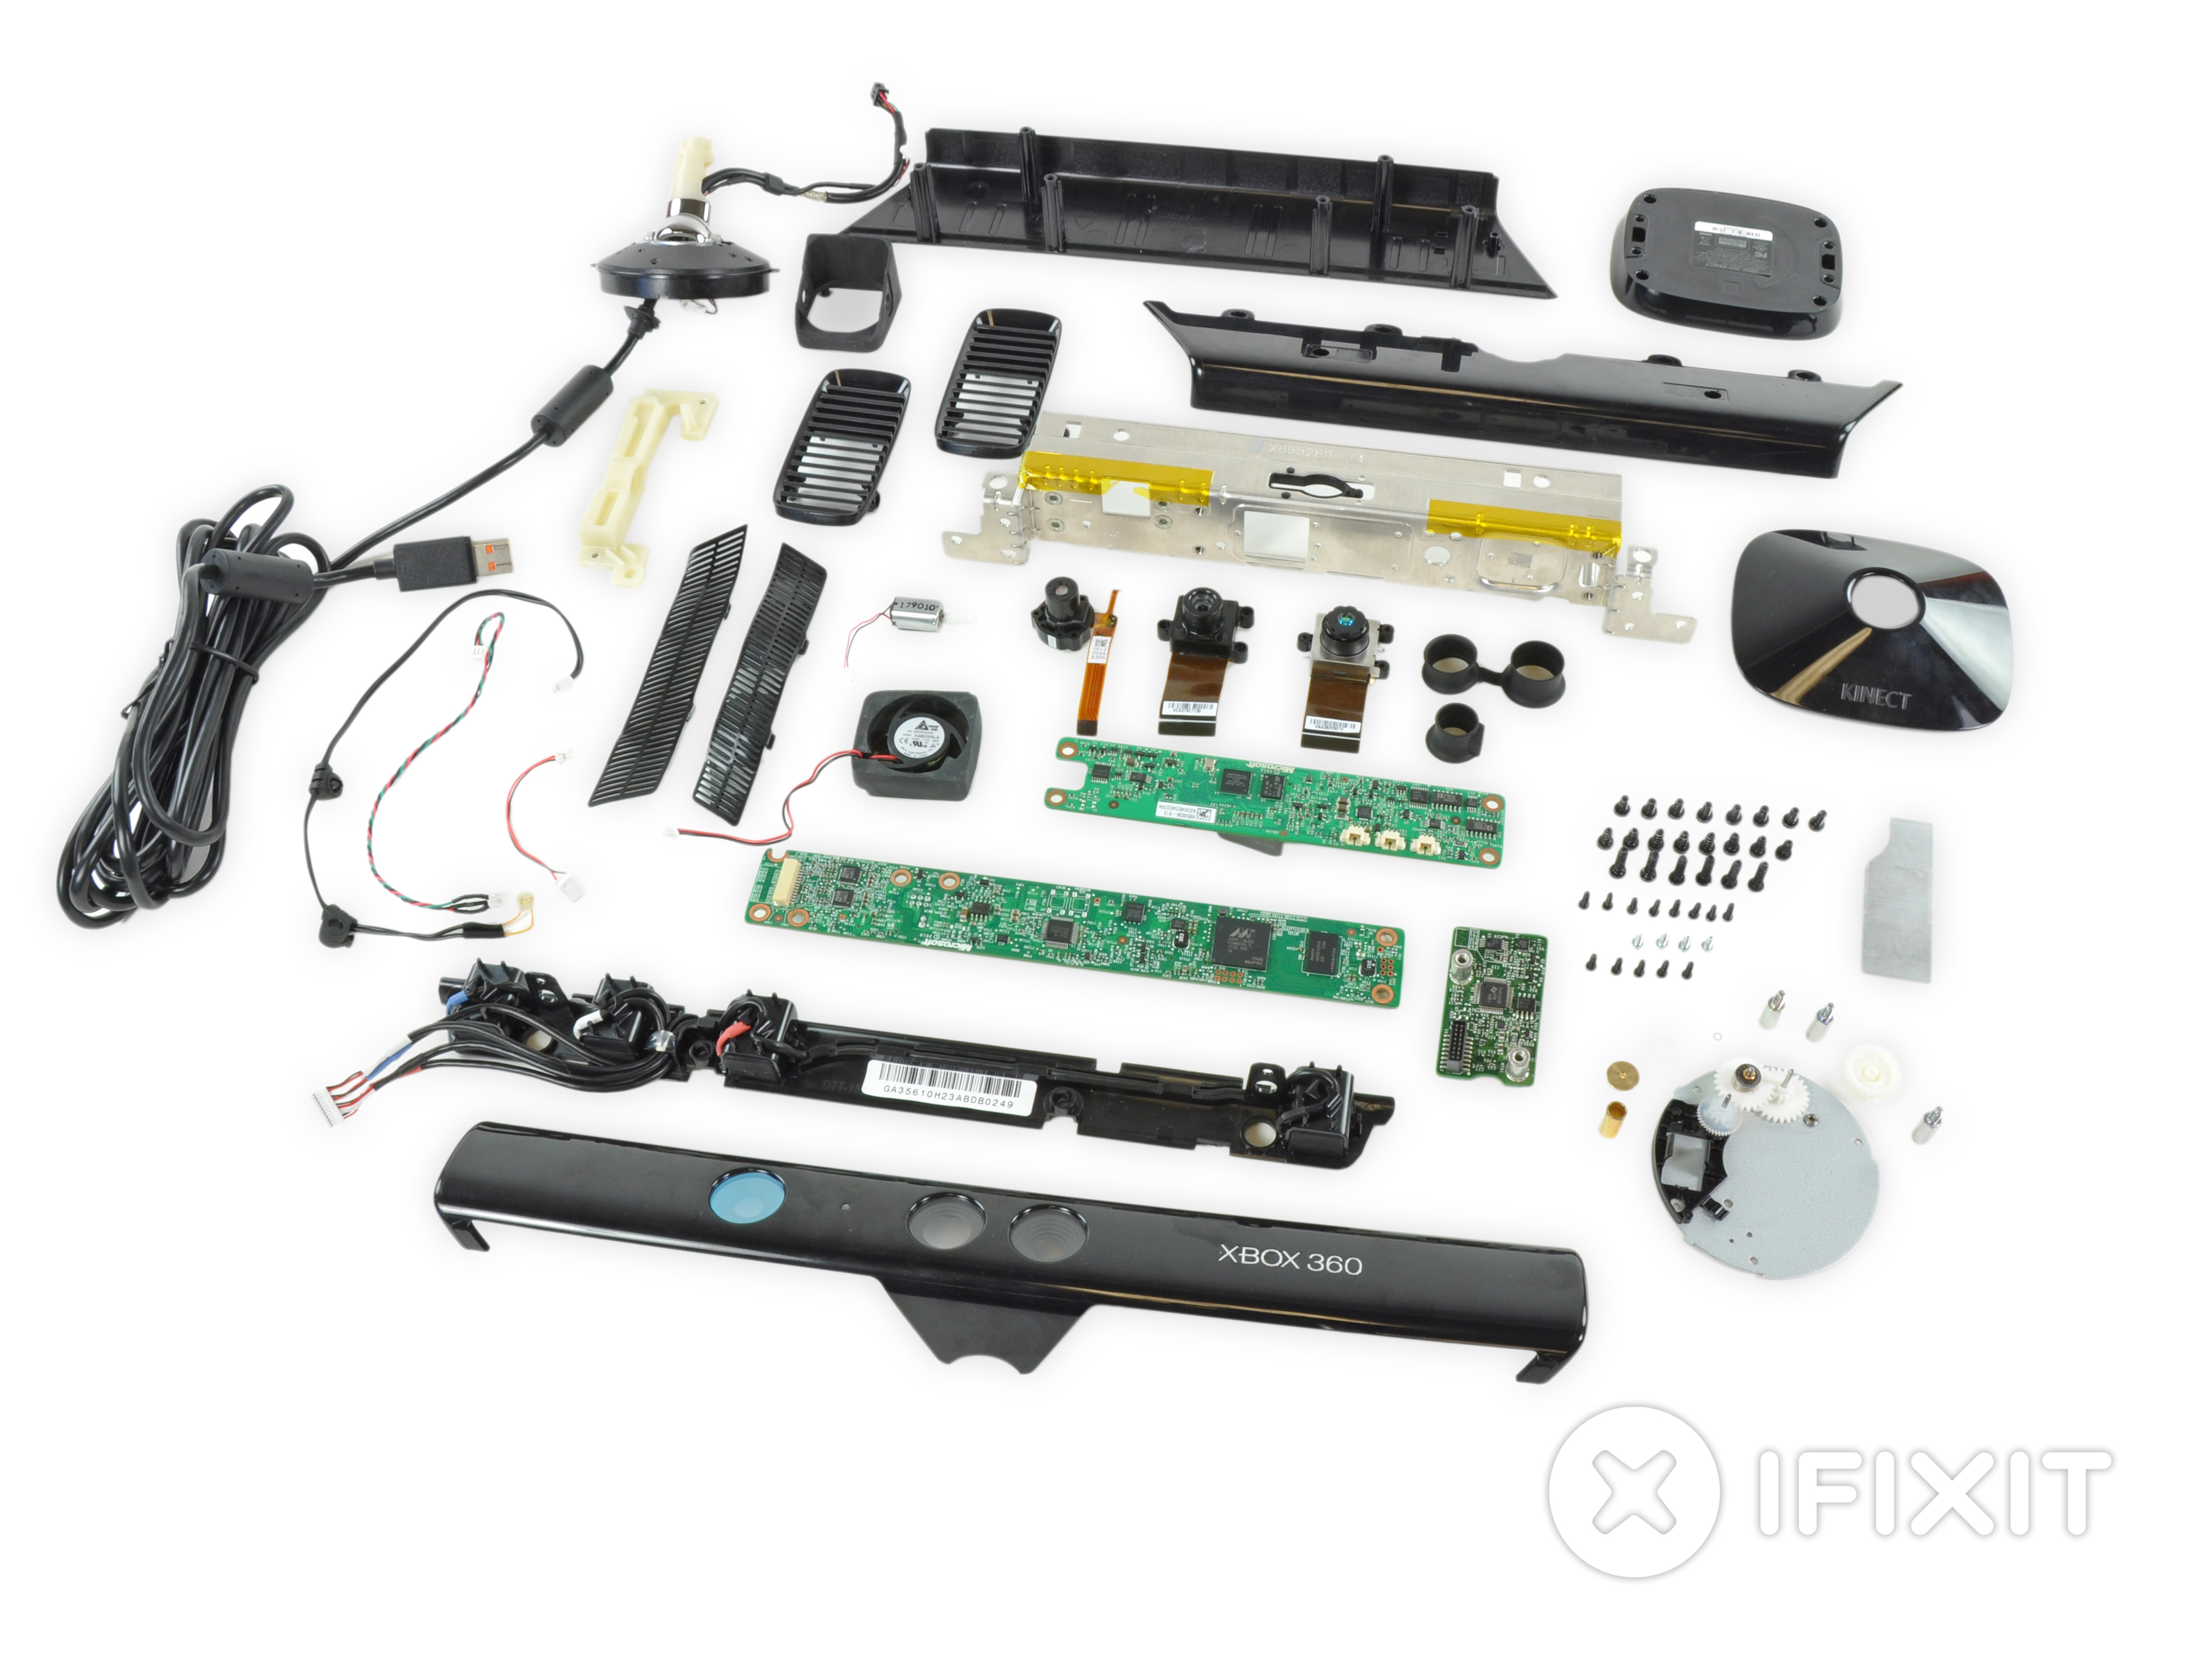 iyQpUMjSo1CVqGIC xbox 360 kinect teardown ifixit xbox 360 kinect wiring diagram at panicattacktreatment.co